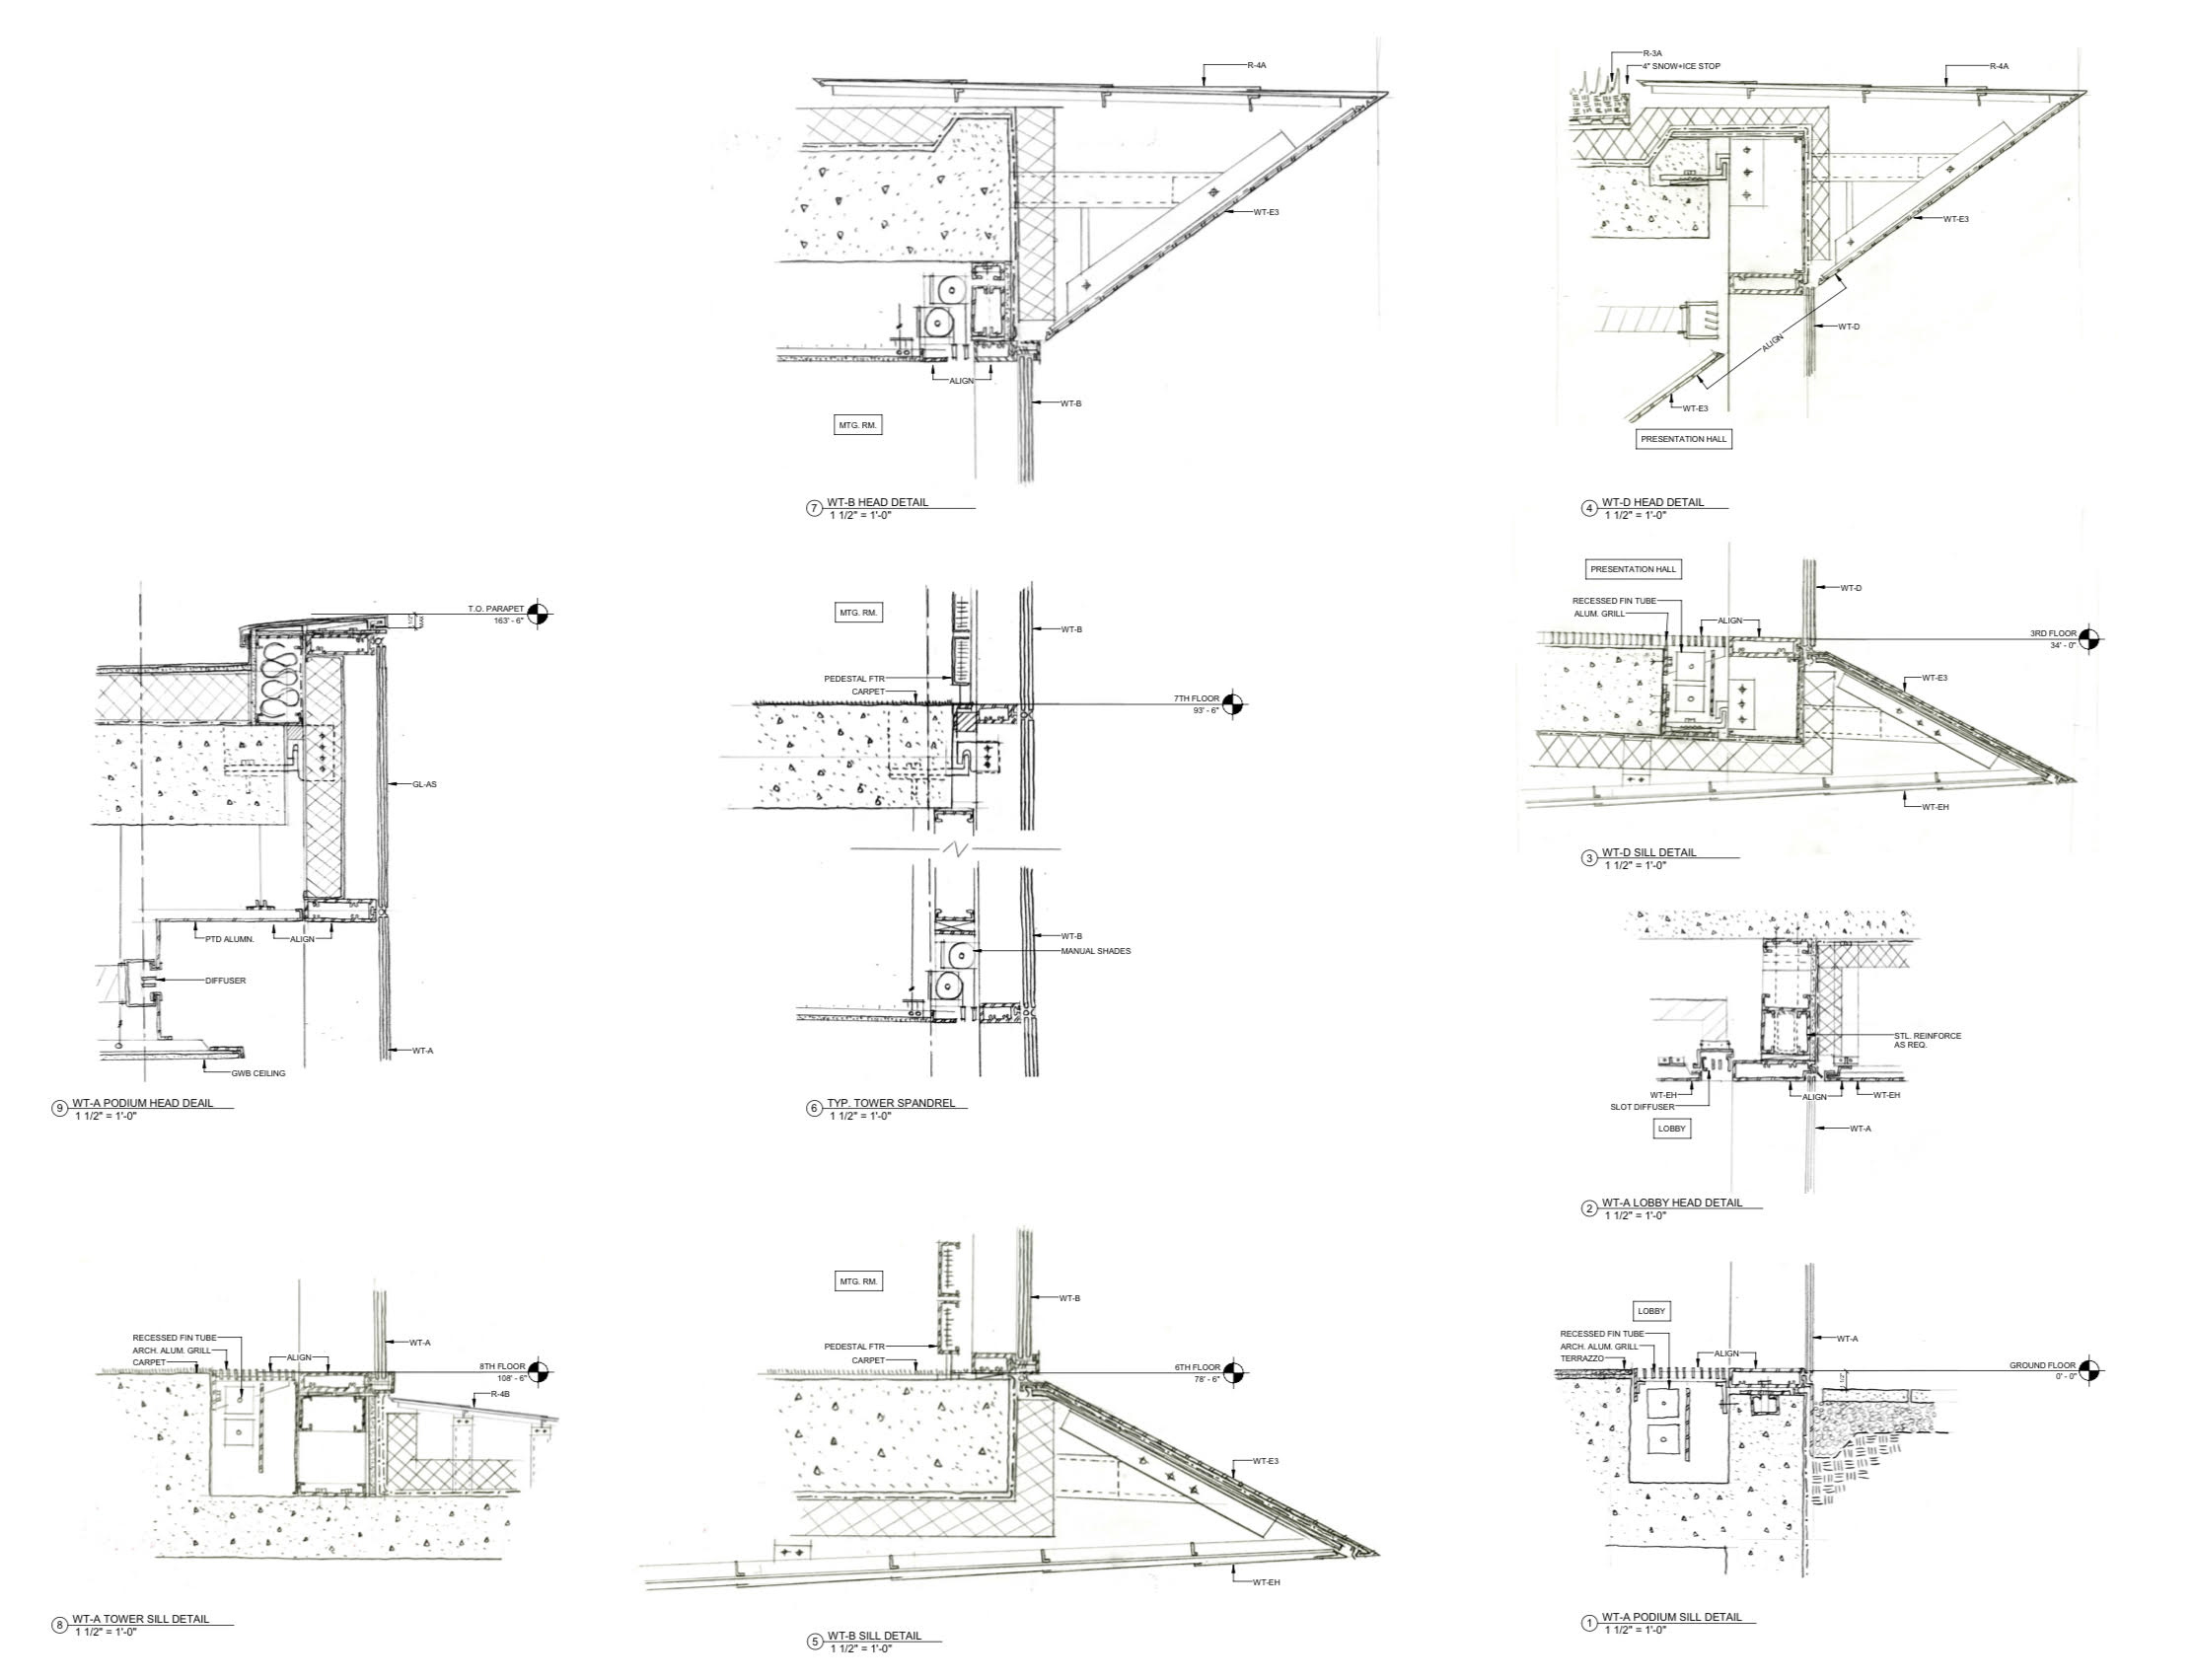 Diagram of the Rubenstein Forum facade system and the zinc panels.